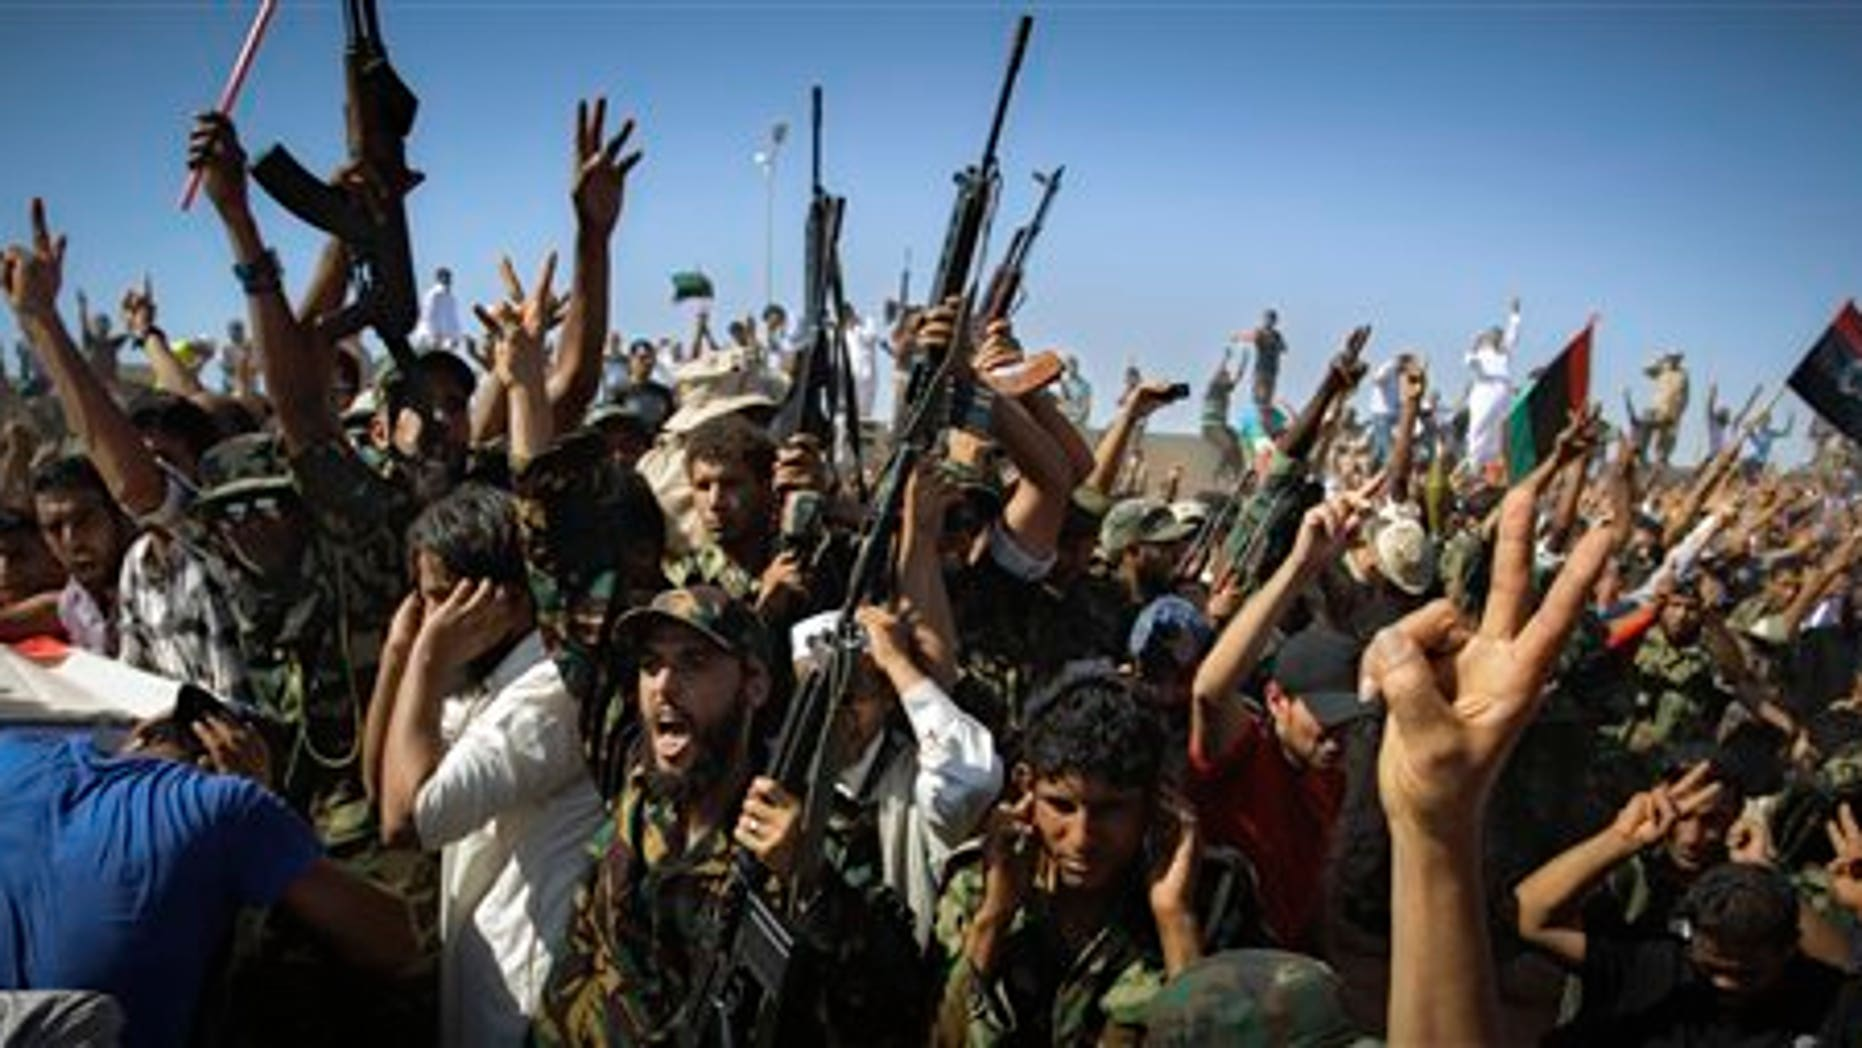 July 29: Libyan men salute and chant slogans during funeral of the Libyan rebels' slain military chief Abdel-Fattah Younis in the rebel-held town of Benghazi, Libya. Thousands of mourners marched in the funeral procession Friday for the Libyan rebels' slain military chief, a day after he was gunned down under still mysterious circumstances. Abdel-Fattah Younis was killed as he traveled from his front lines operations room to the rebels' de facto capital Benghazi.